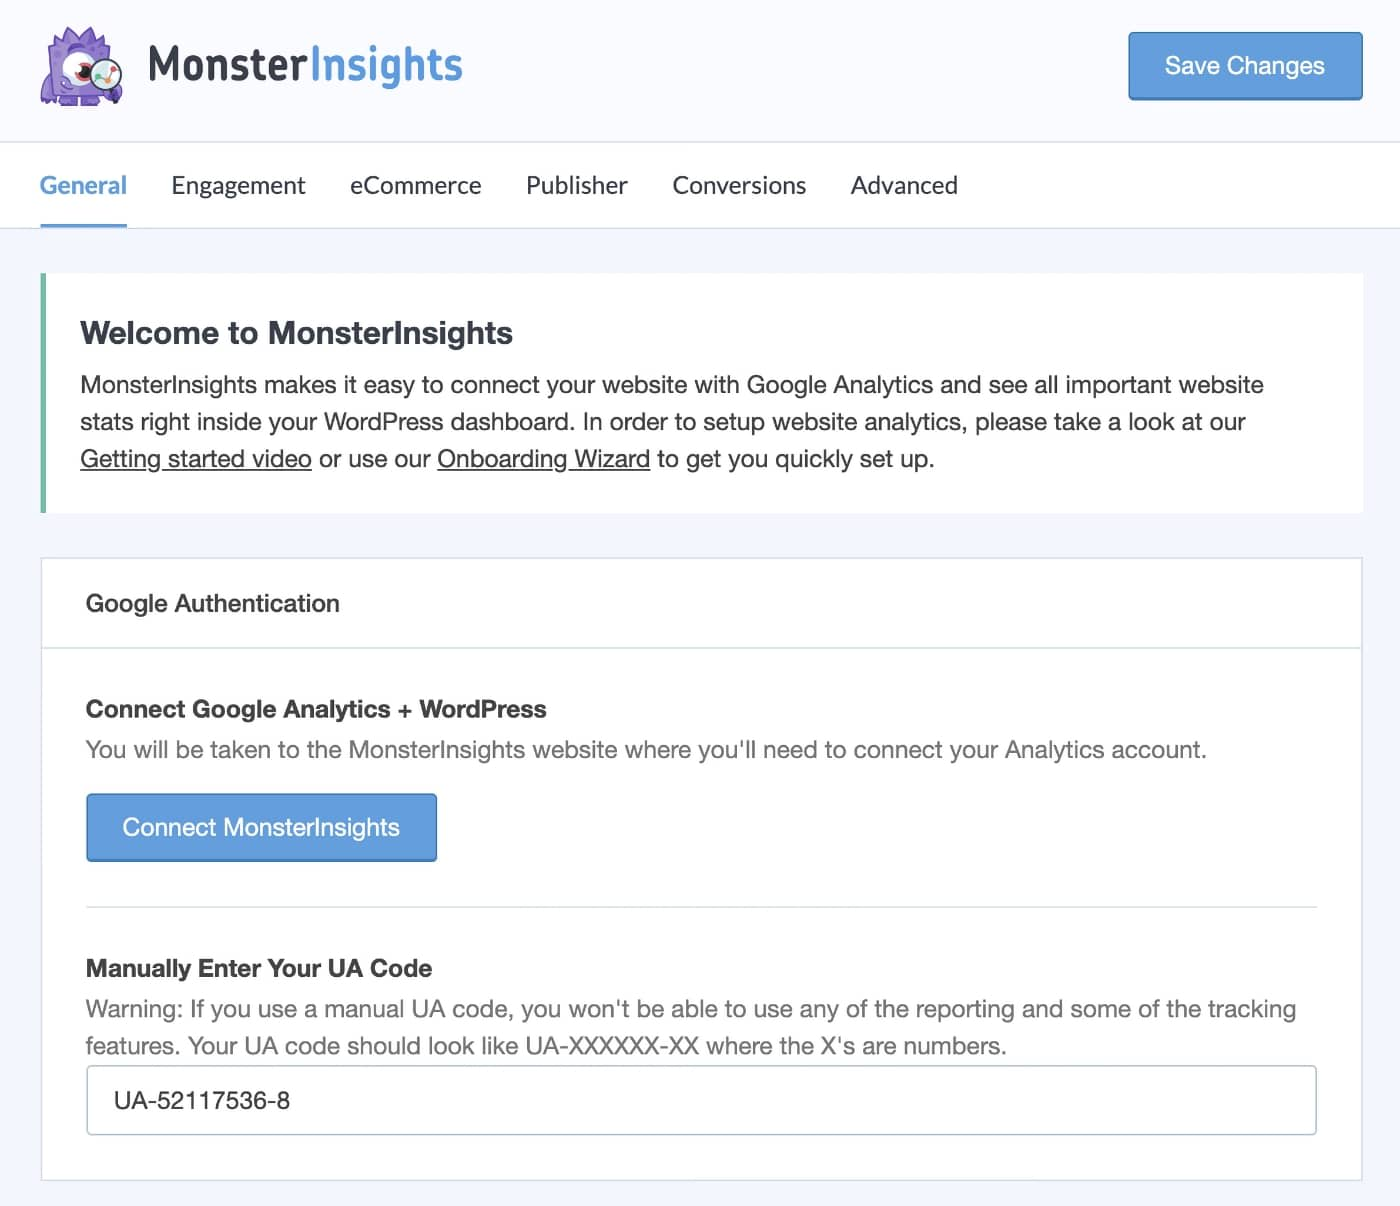 MonsterInsights - Google Authentication